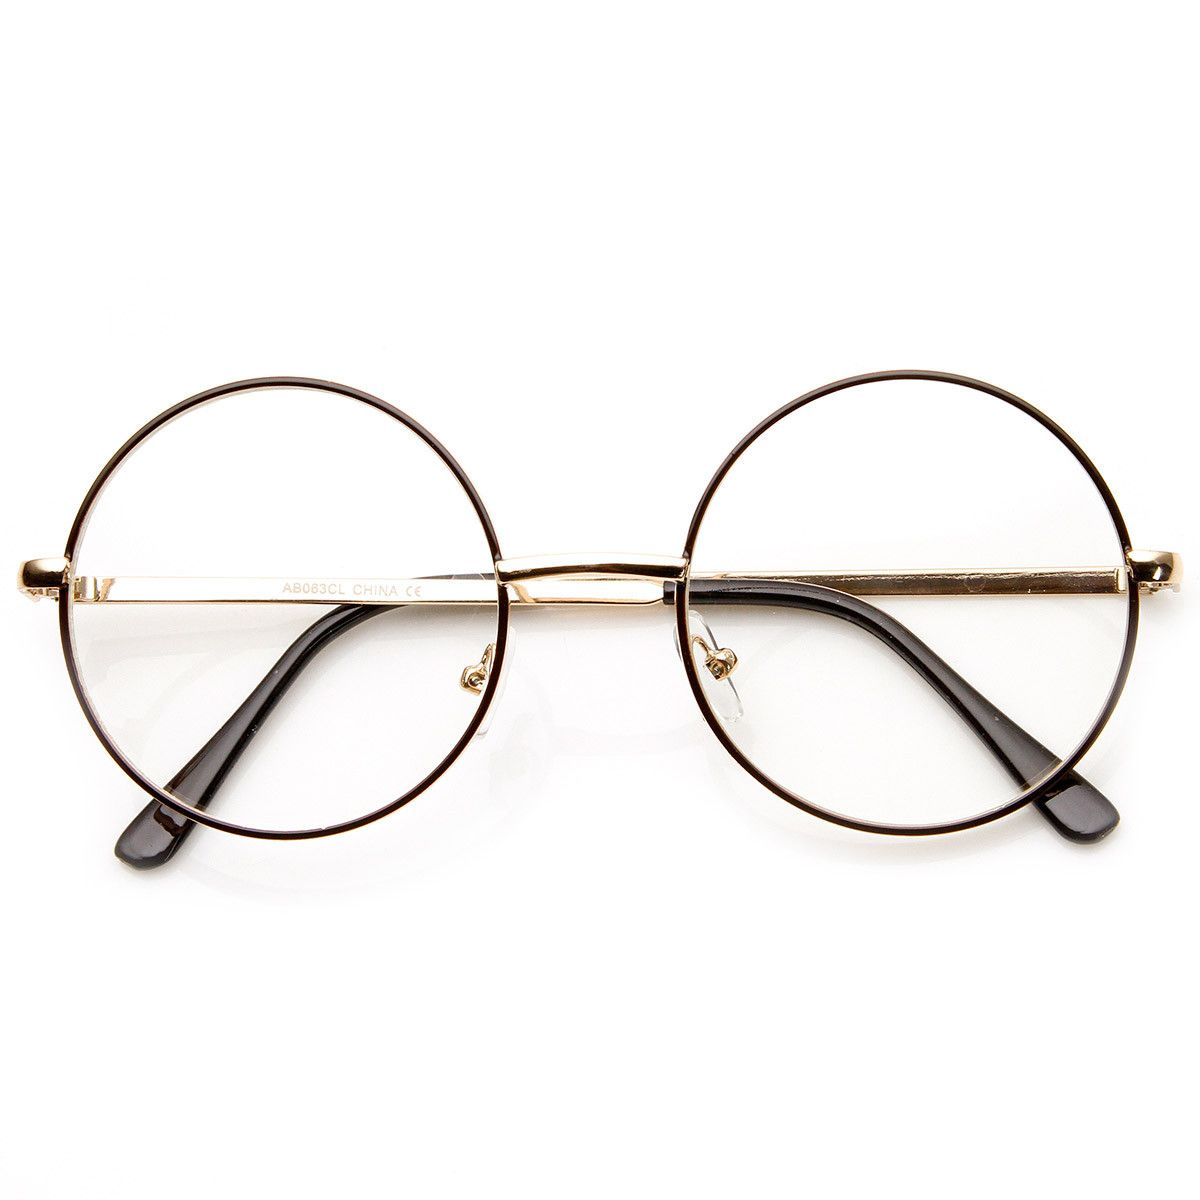 eaf23fc05c76 Mid sized round circular glasses that features a full metal frame and clear  lenses. These round glasses are perfect for someone looking for a Lennon  metal ...